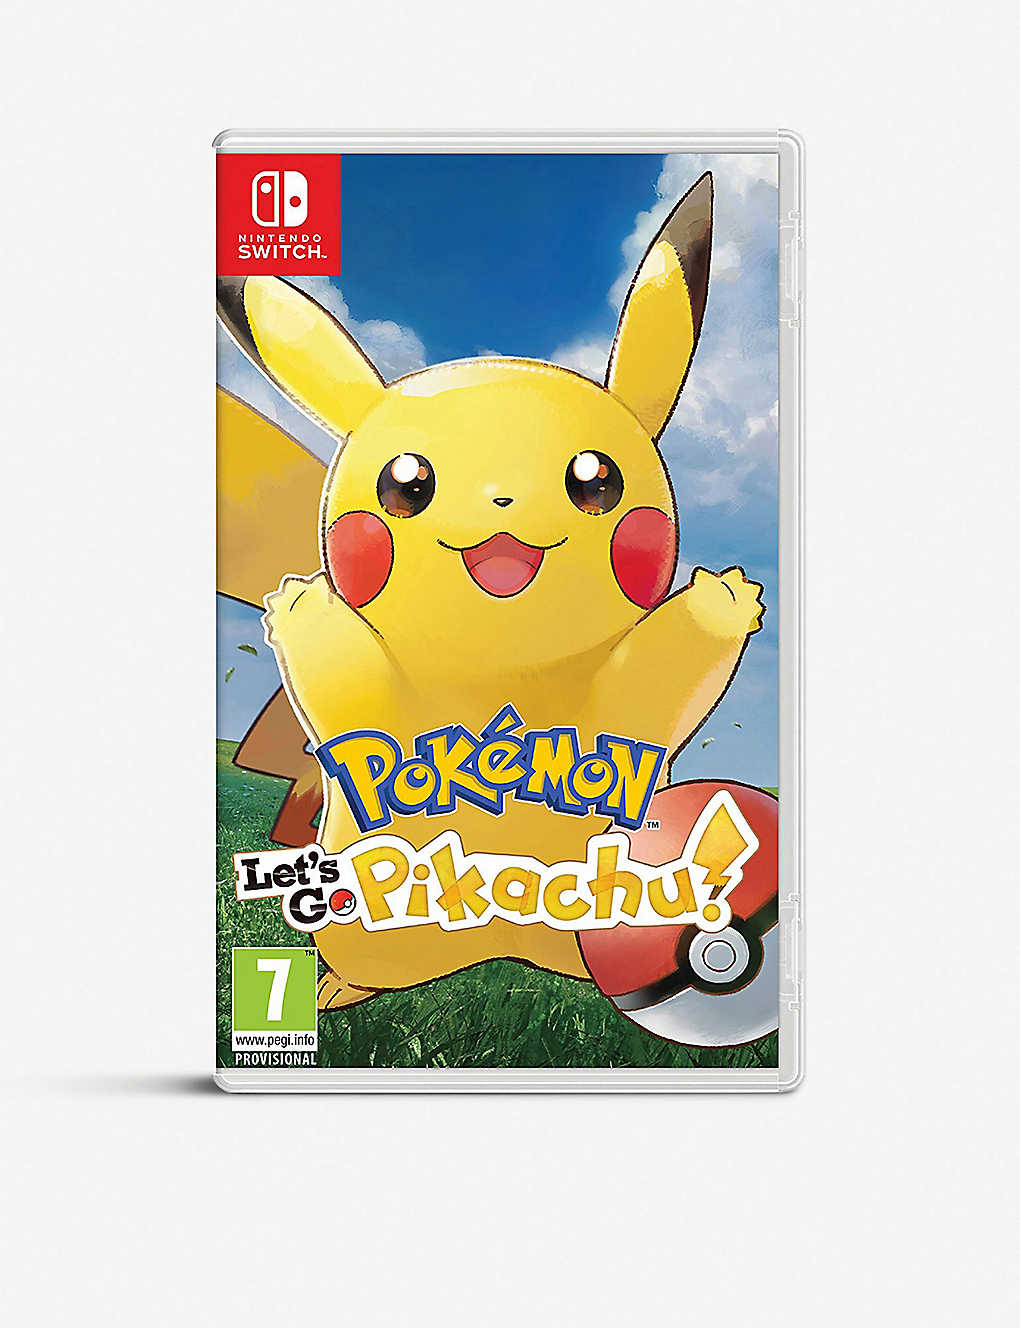 NINTENDO: Let's Go Pikachu! Switch game